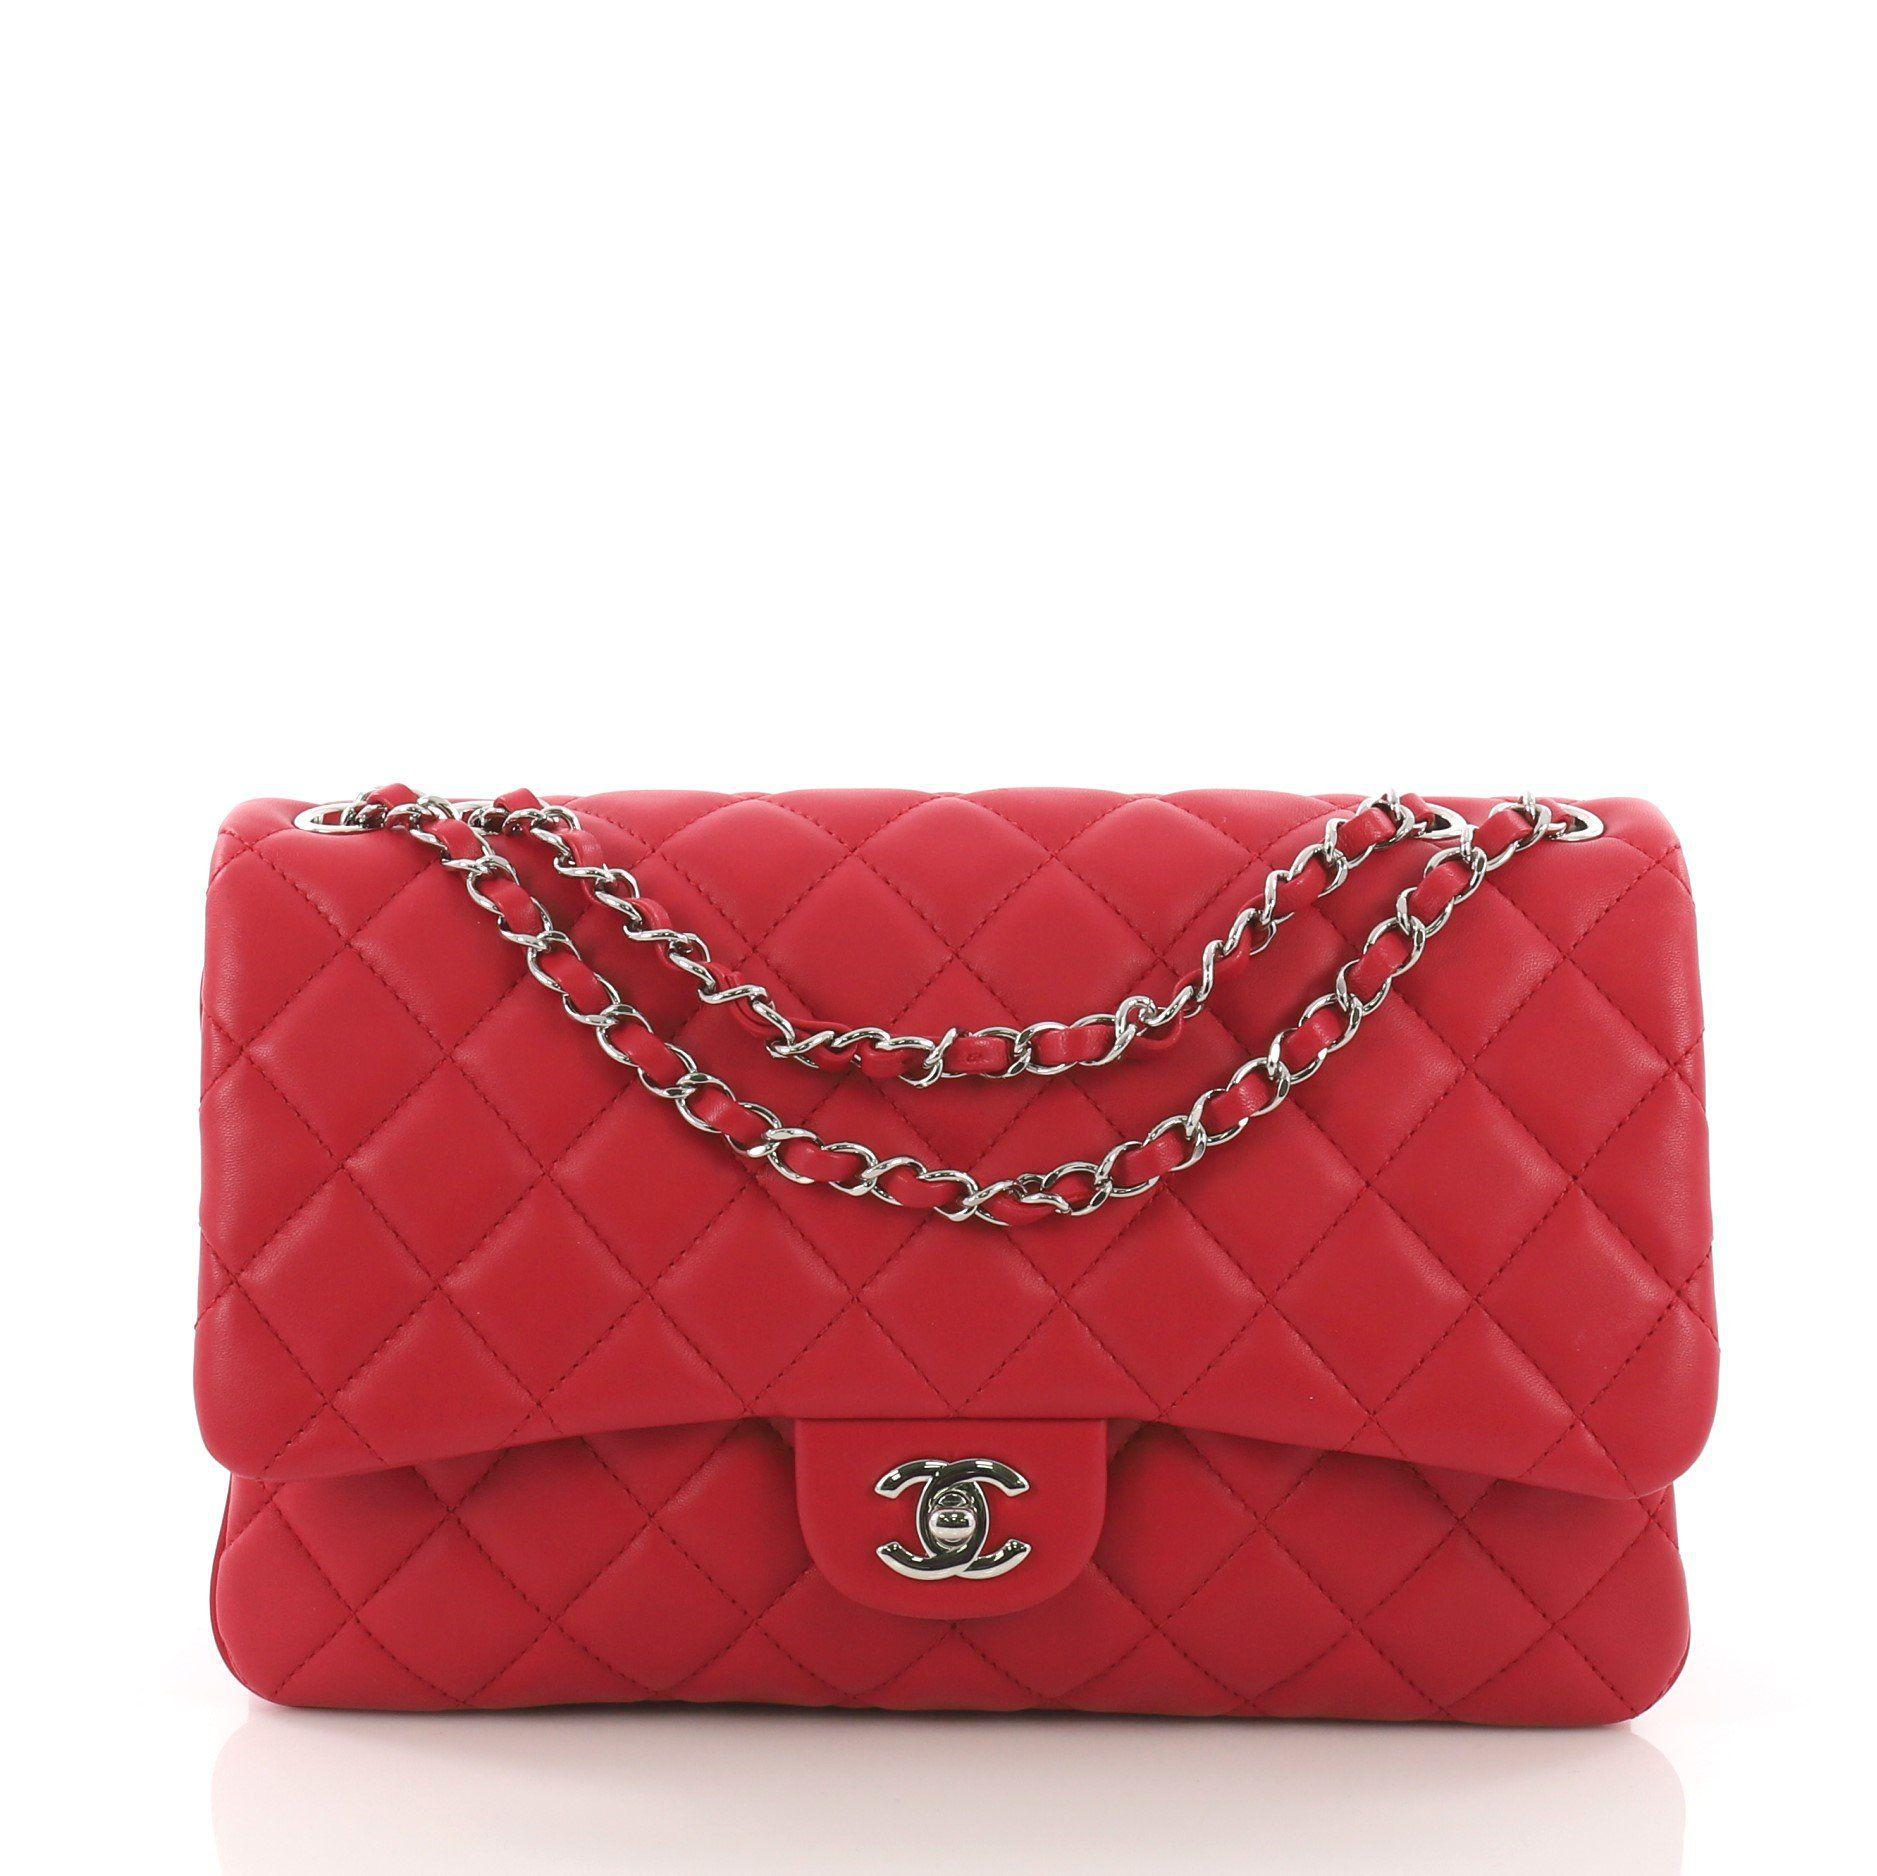 f71fc8869ade97 Lyst - Chanel Pre Owned 3 Bag Quilted Lambskin Jumbo in Red